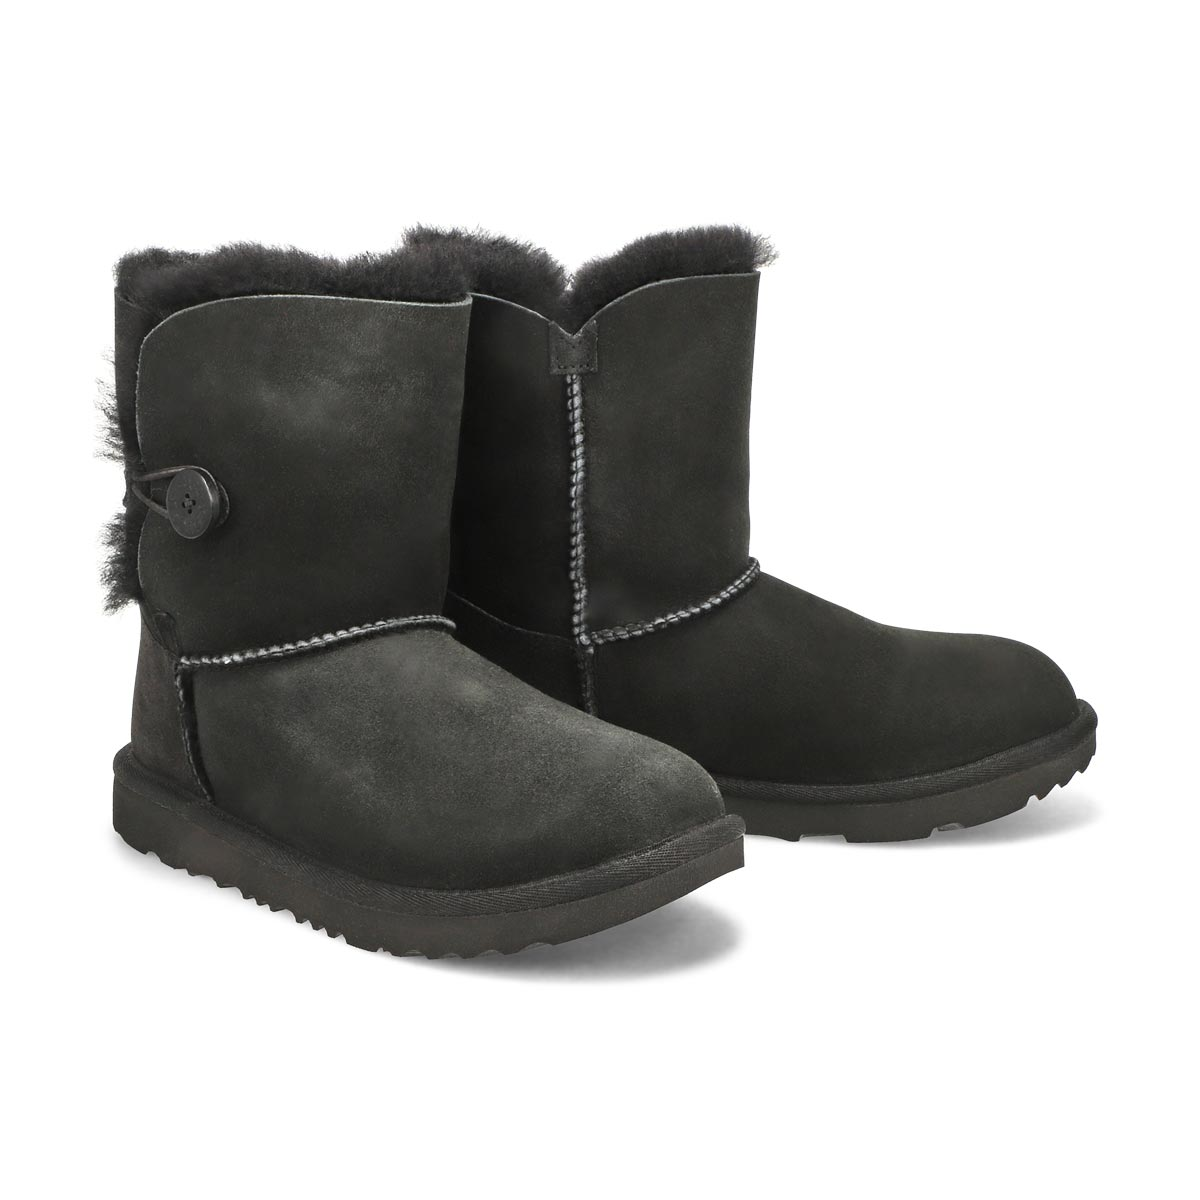 Grls Bailey Button II blk sheepskin boot